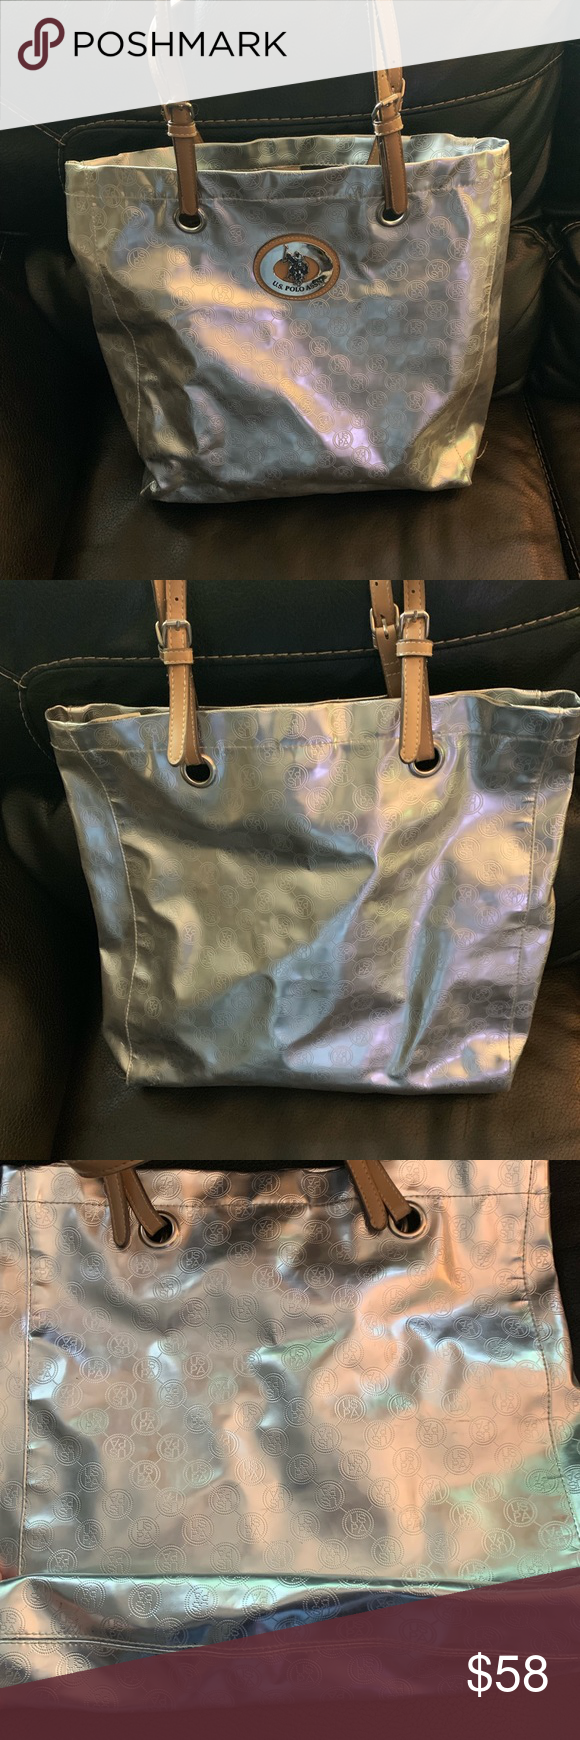 Us Polo Association Tote Uspa Tote Bag Gently Used Torn Pocket On The Inside As Shown In Photo U S Polo Assn Bags Totes Polo Association Tote Bags Totes